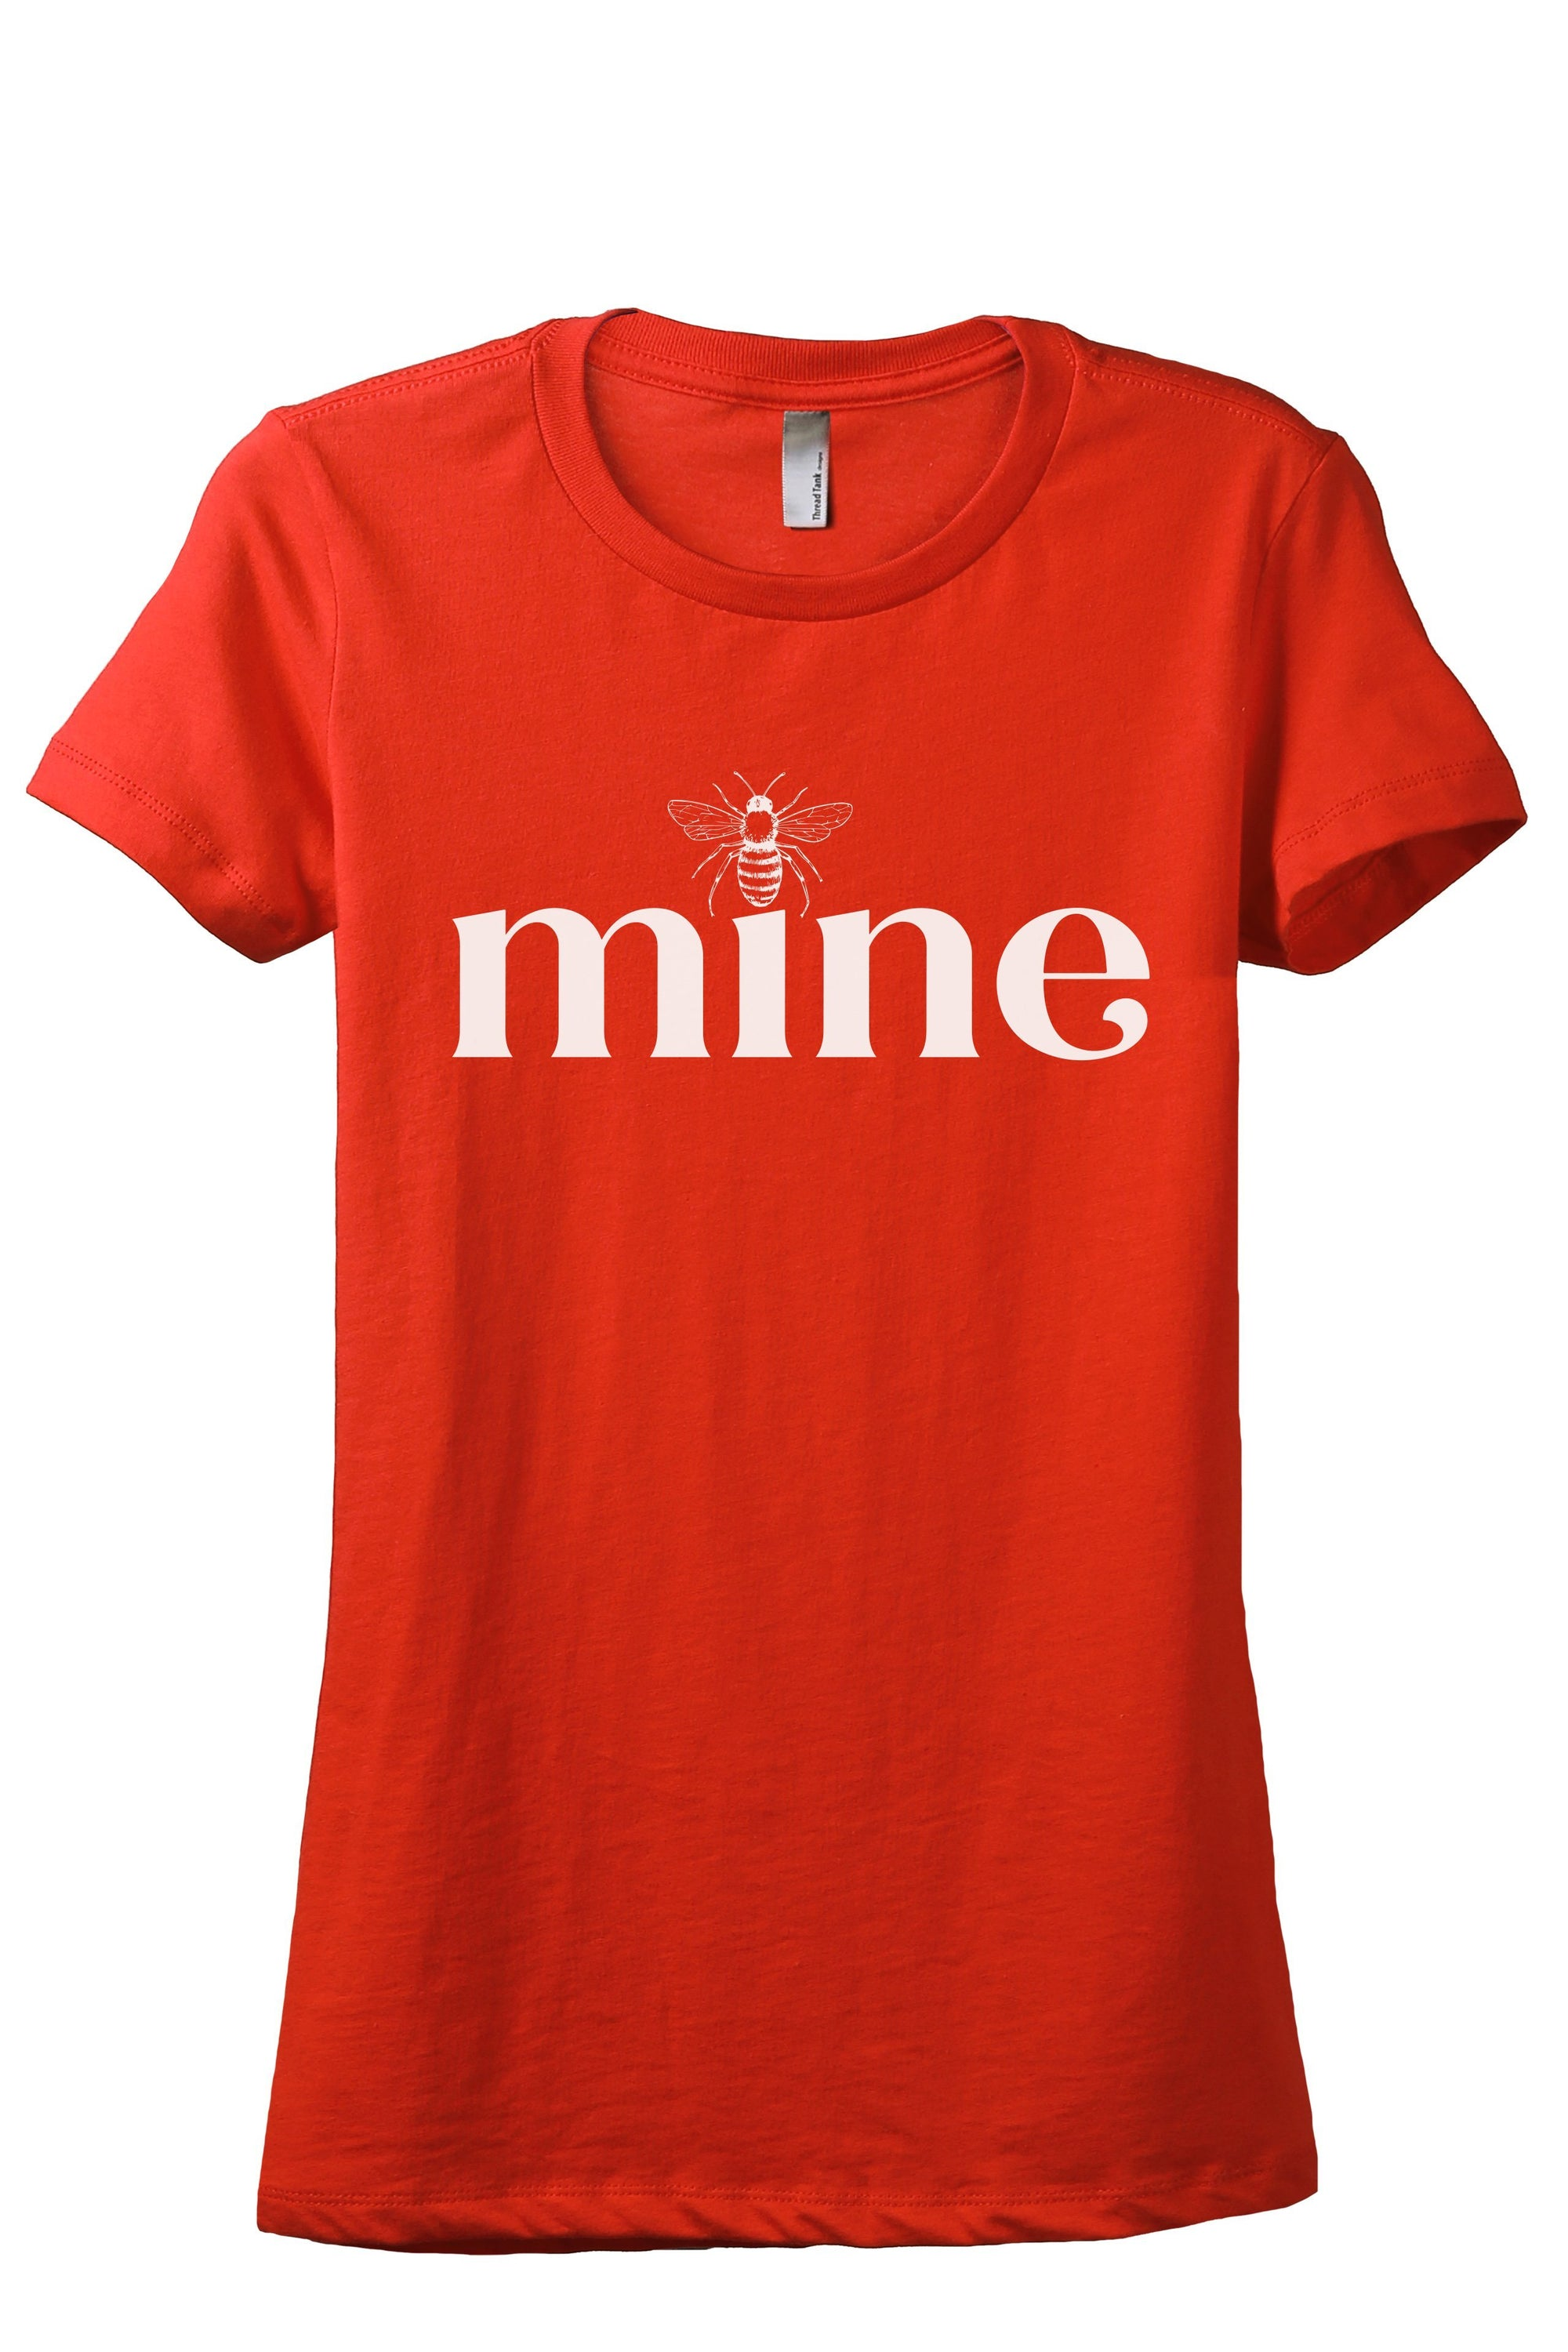 Bee Mine Women's Relaxed Crewneck T-Shirt Top Tee Poppy